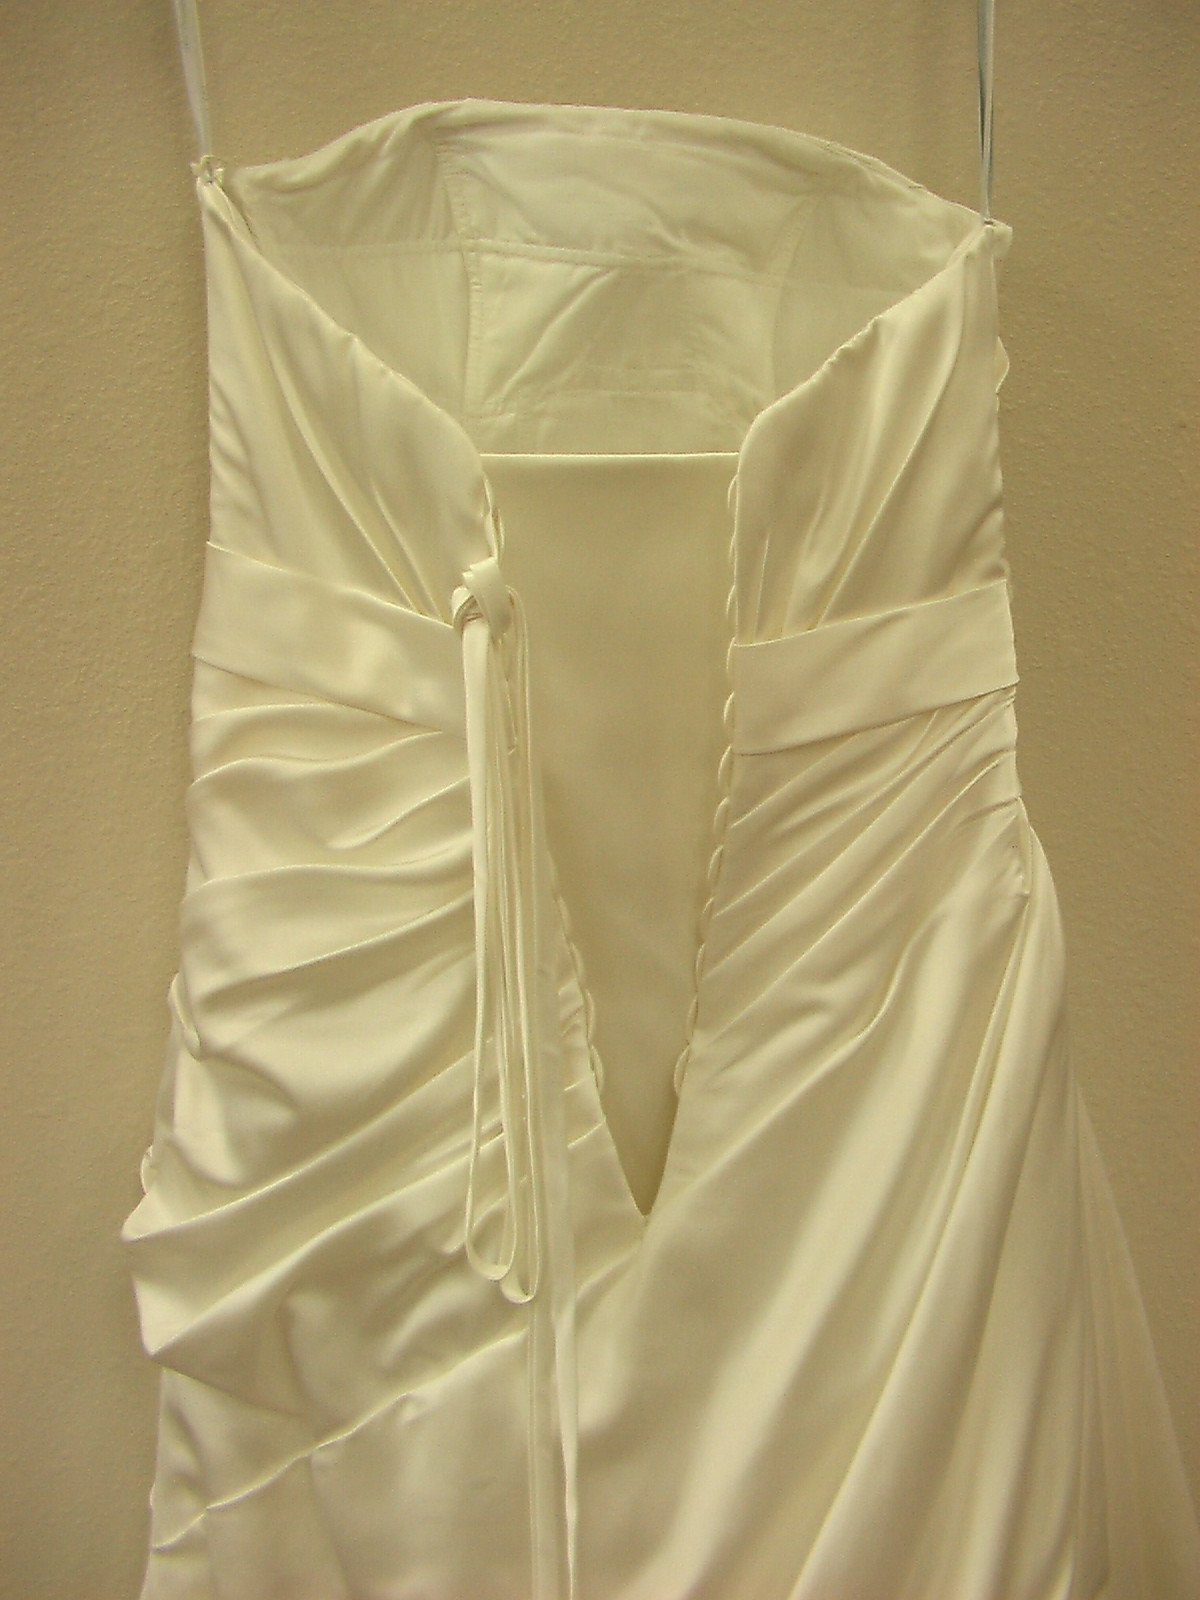 Impression 10032 Ivory size 10 In Stock Wedding Dress - Tom's Bridal